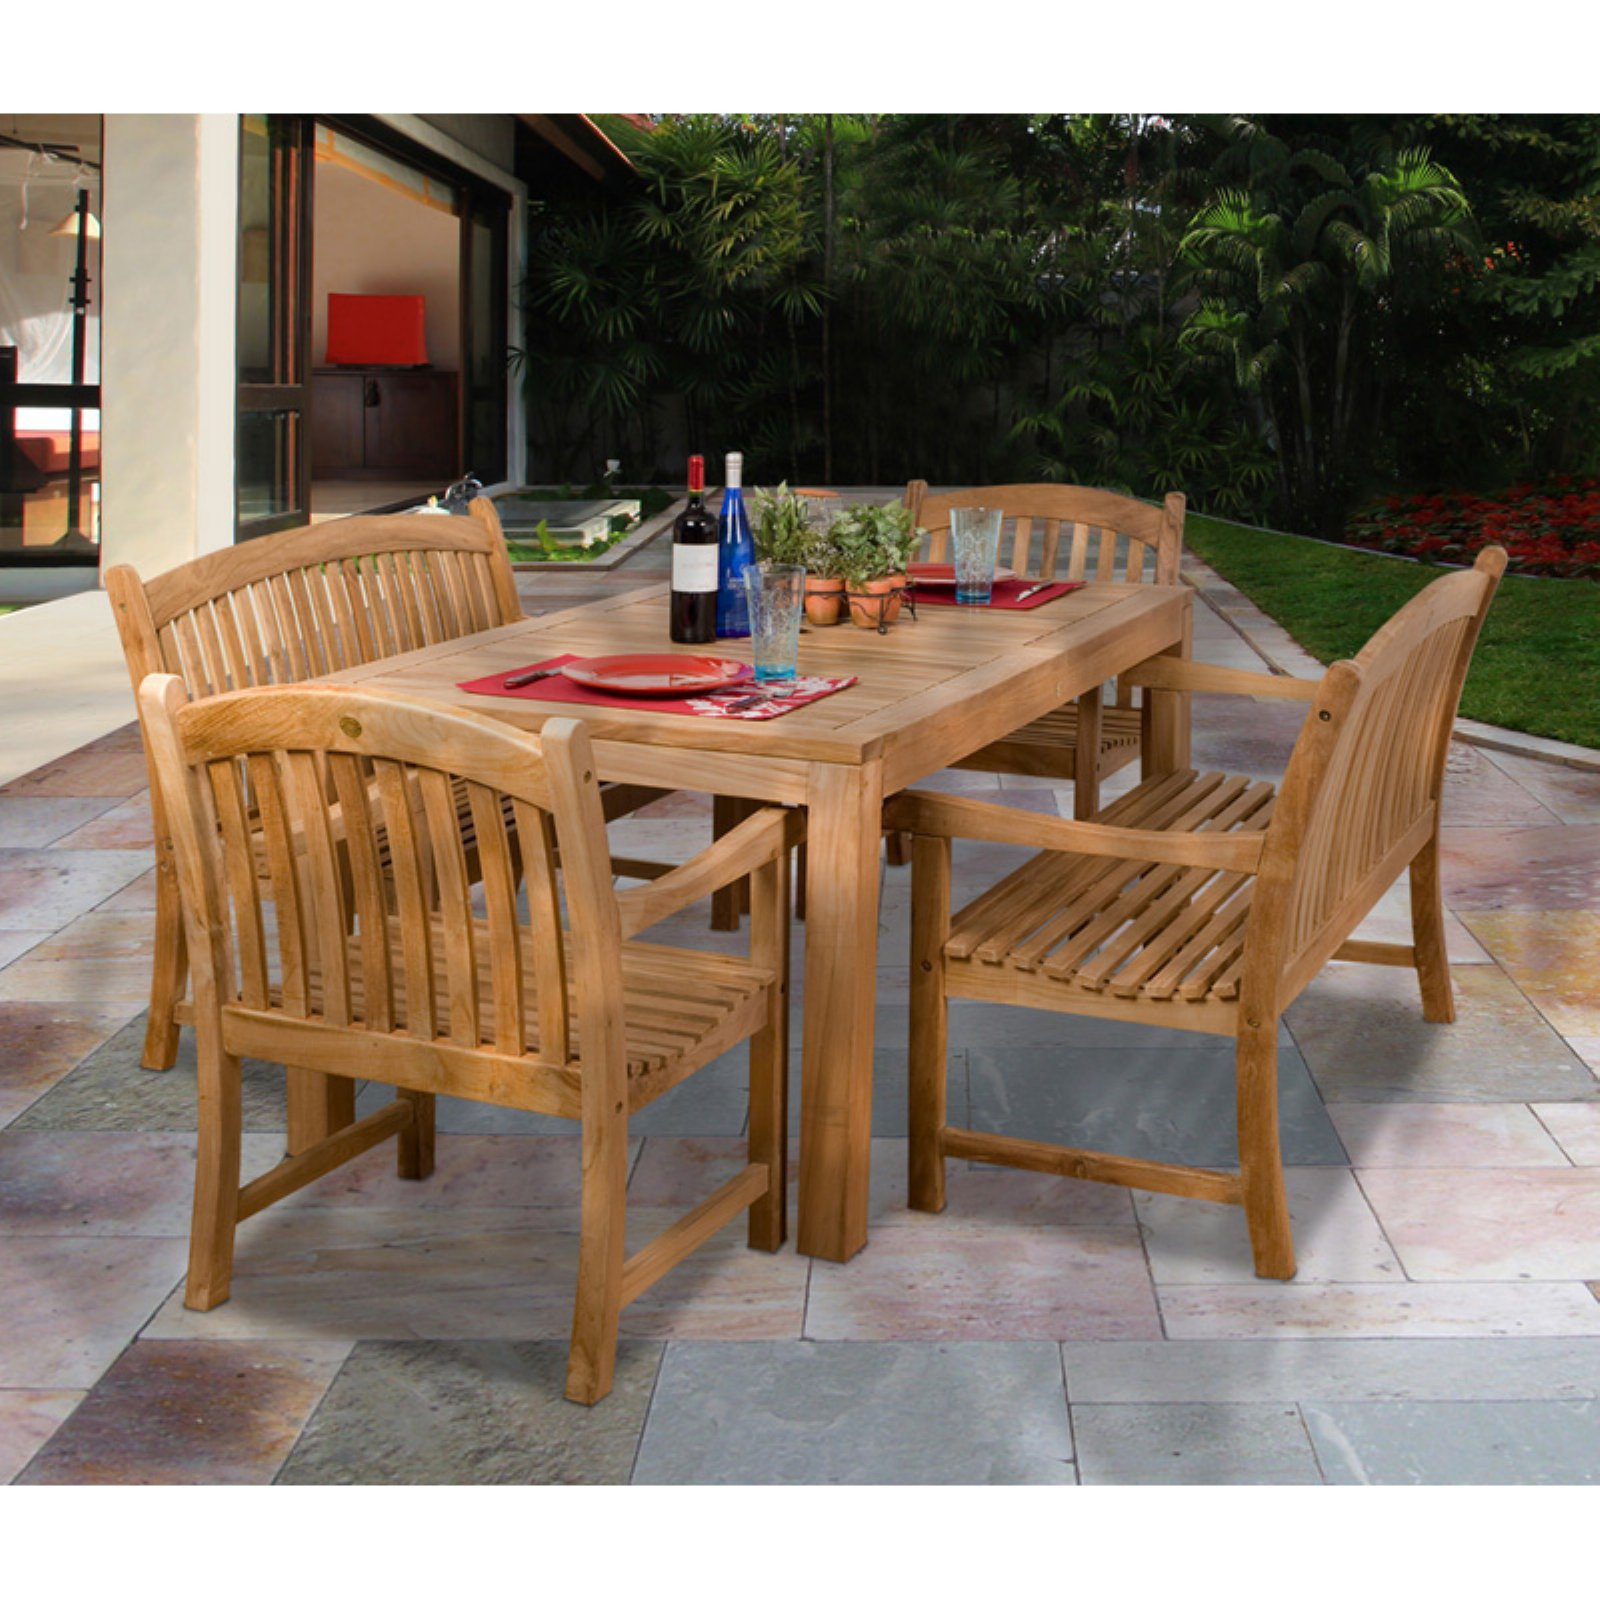 Amazonia Geneve Teak Chair and Bench Dining Set - Seats 6